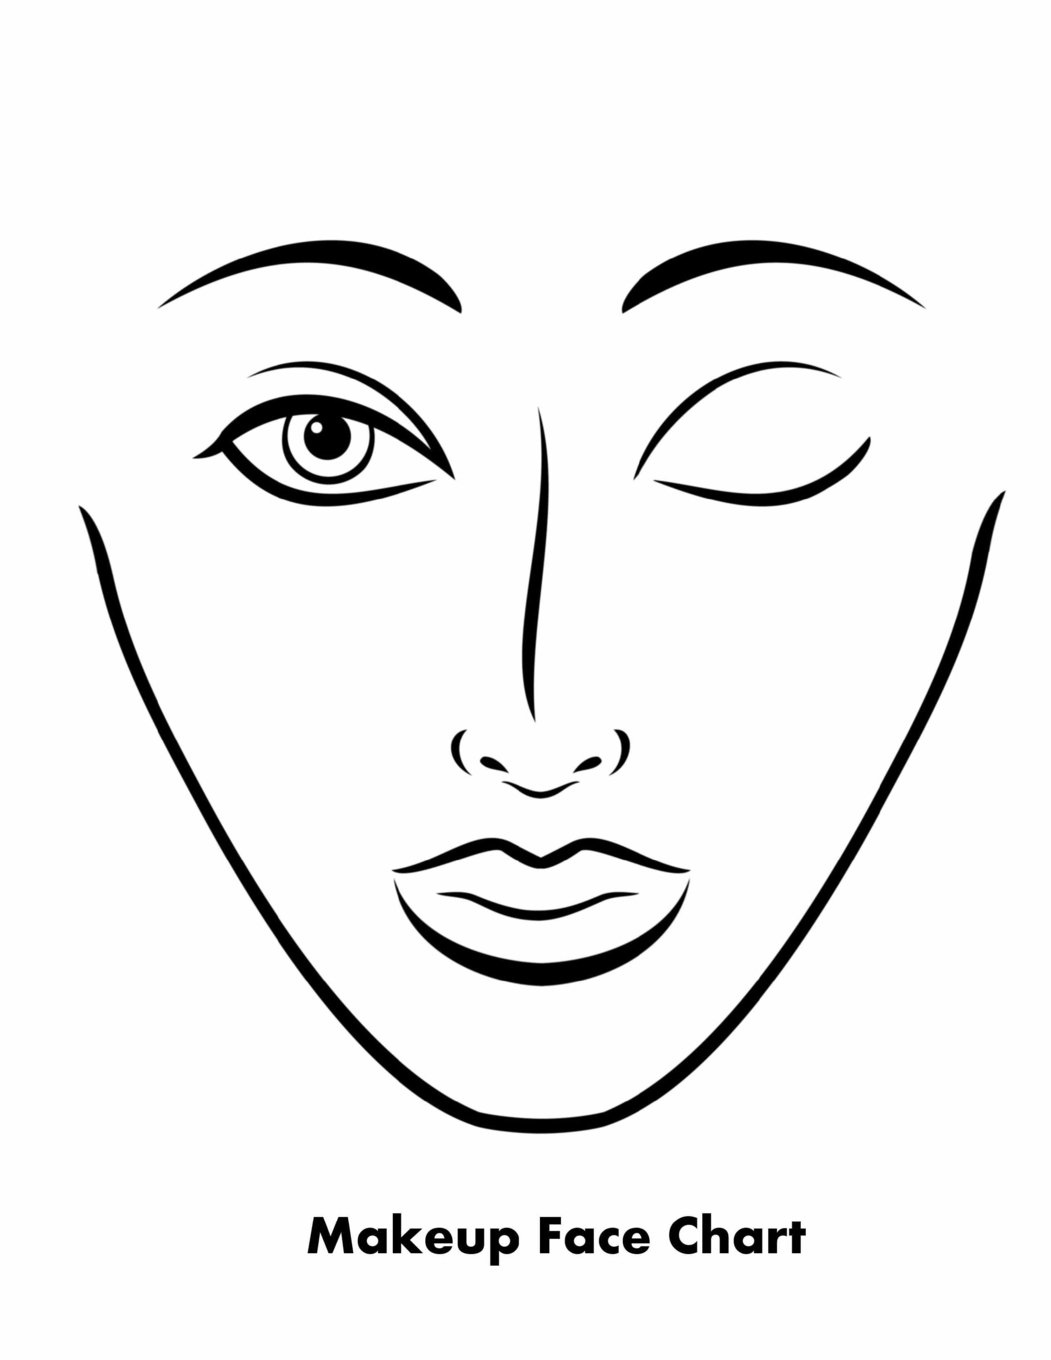 Buy makeup face chart book online at low prices in india makeup